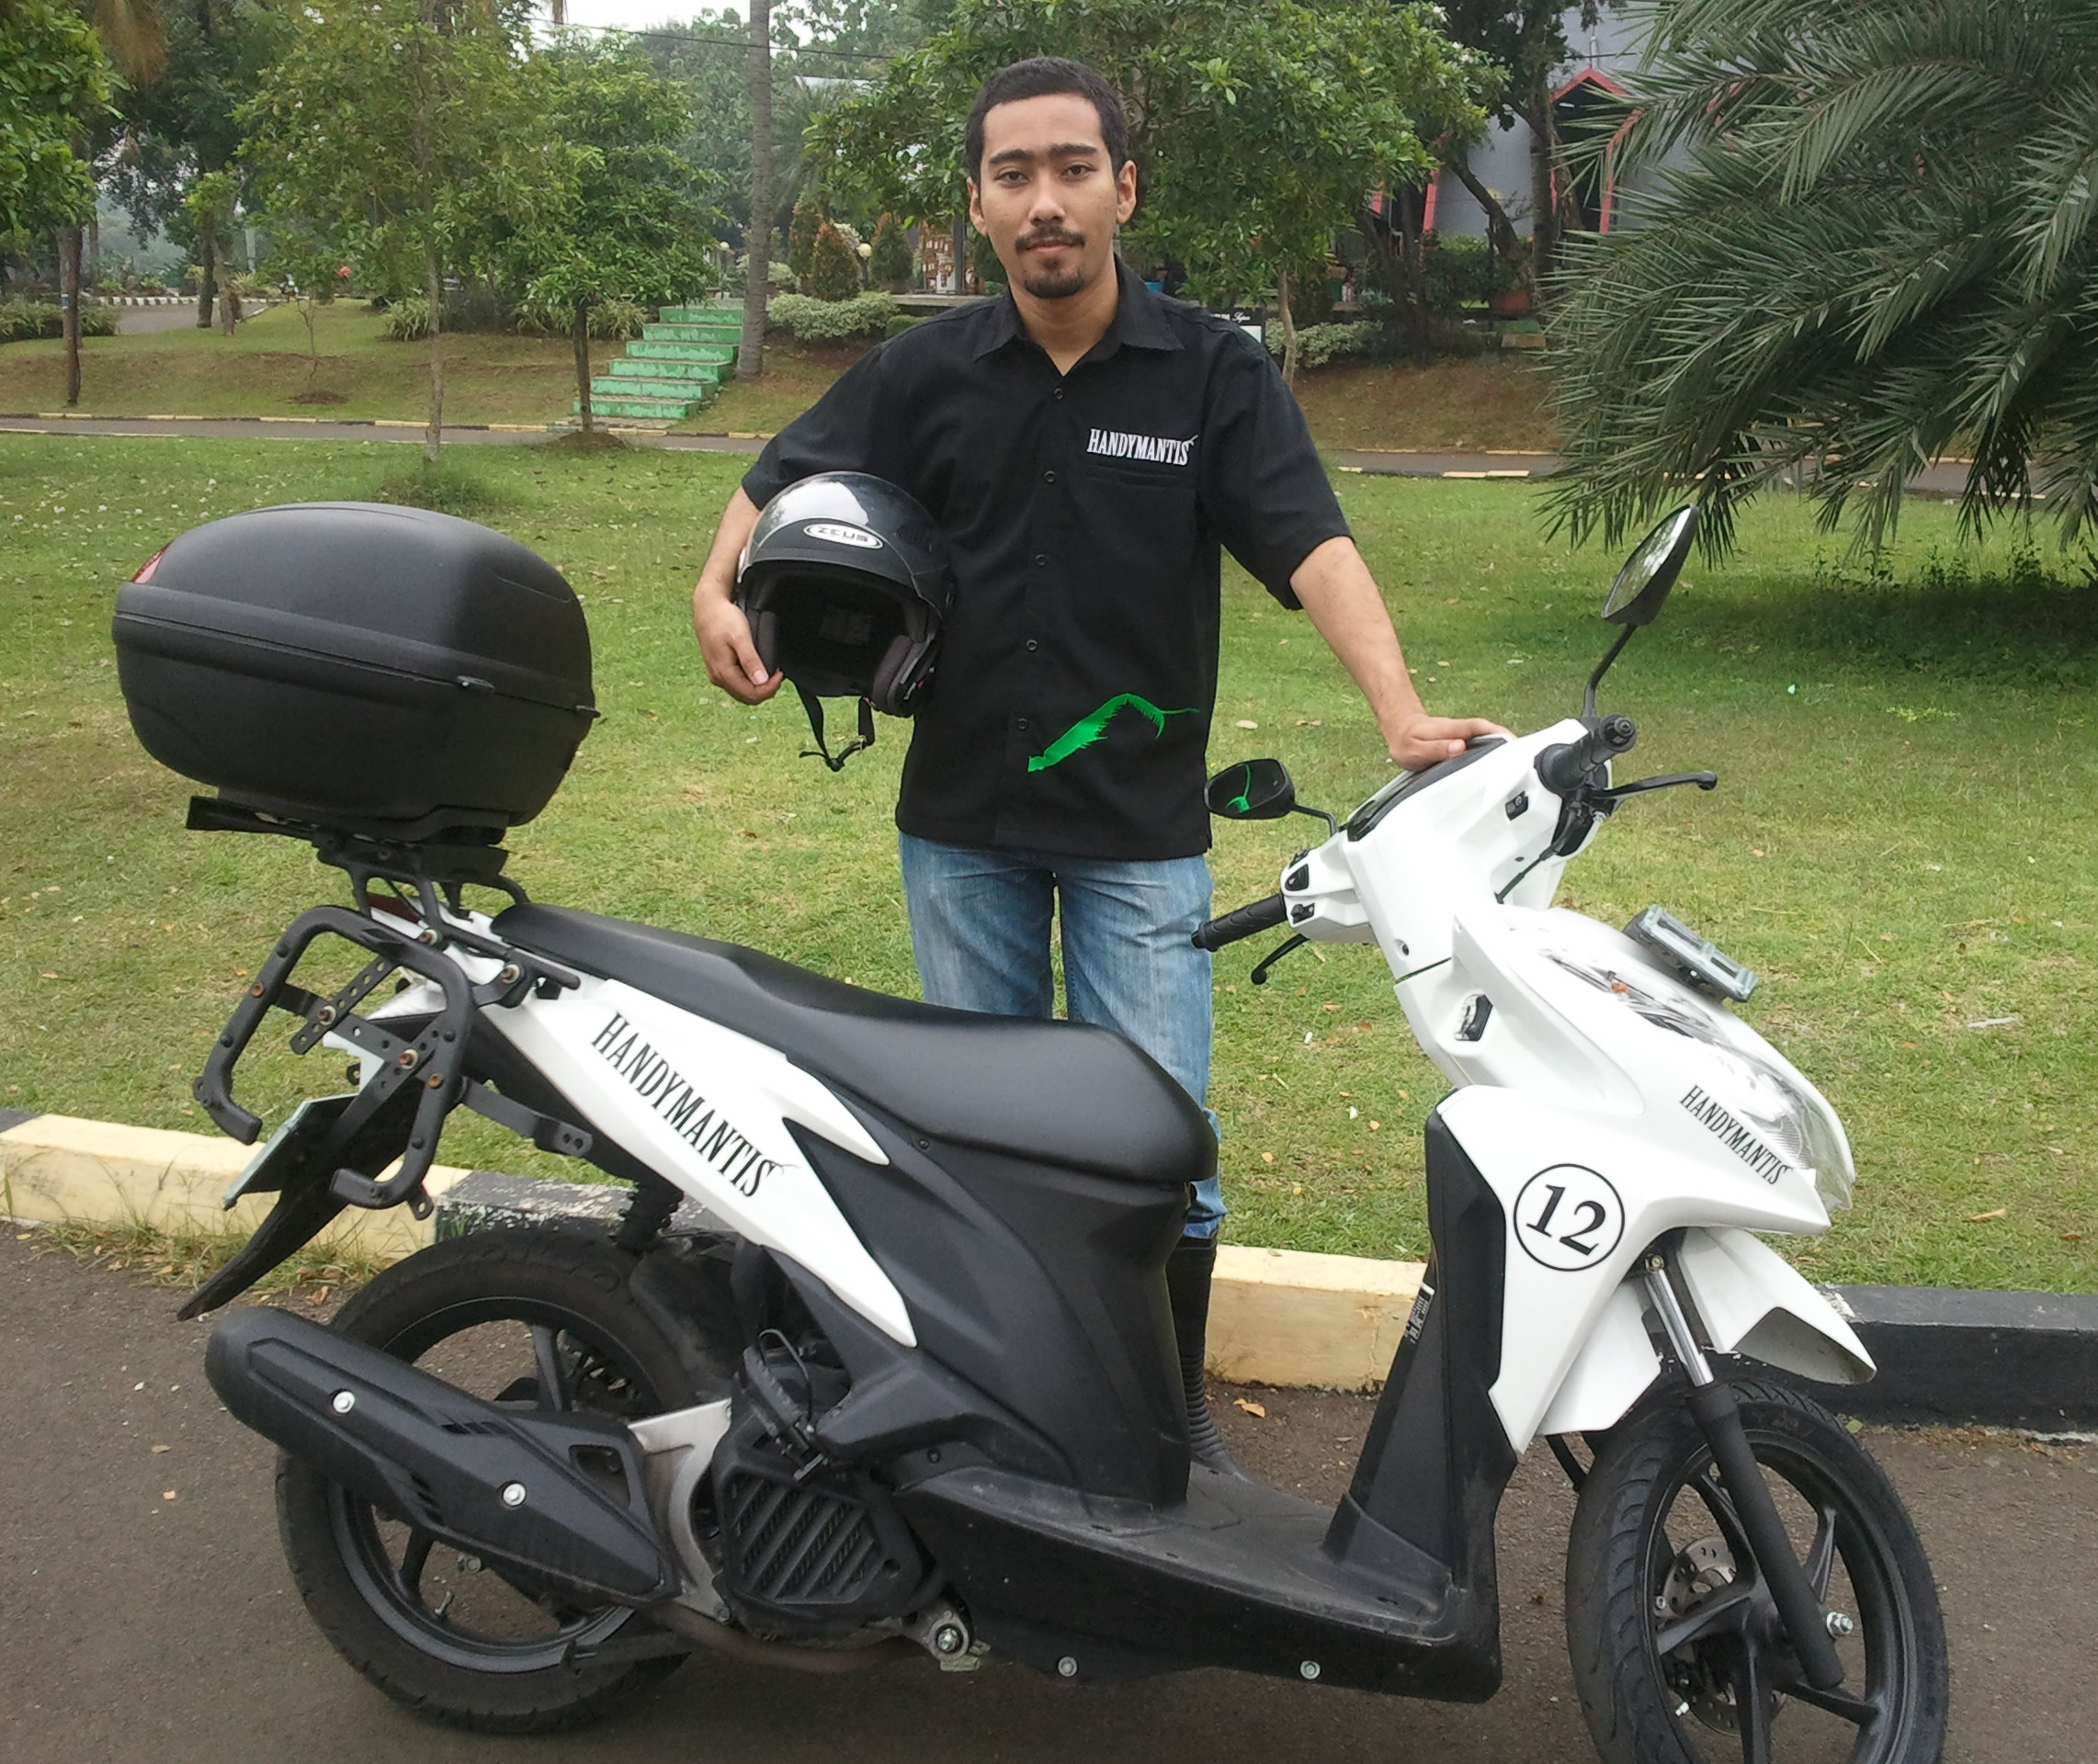 HandyMantis uses chat apps as the backbone of its motorcycle courier service in Indonesia